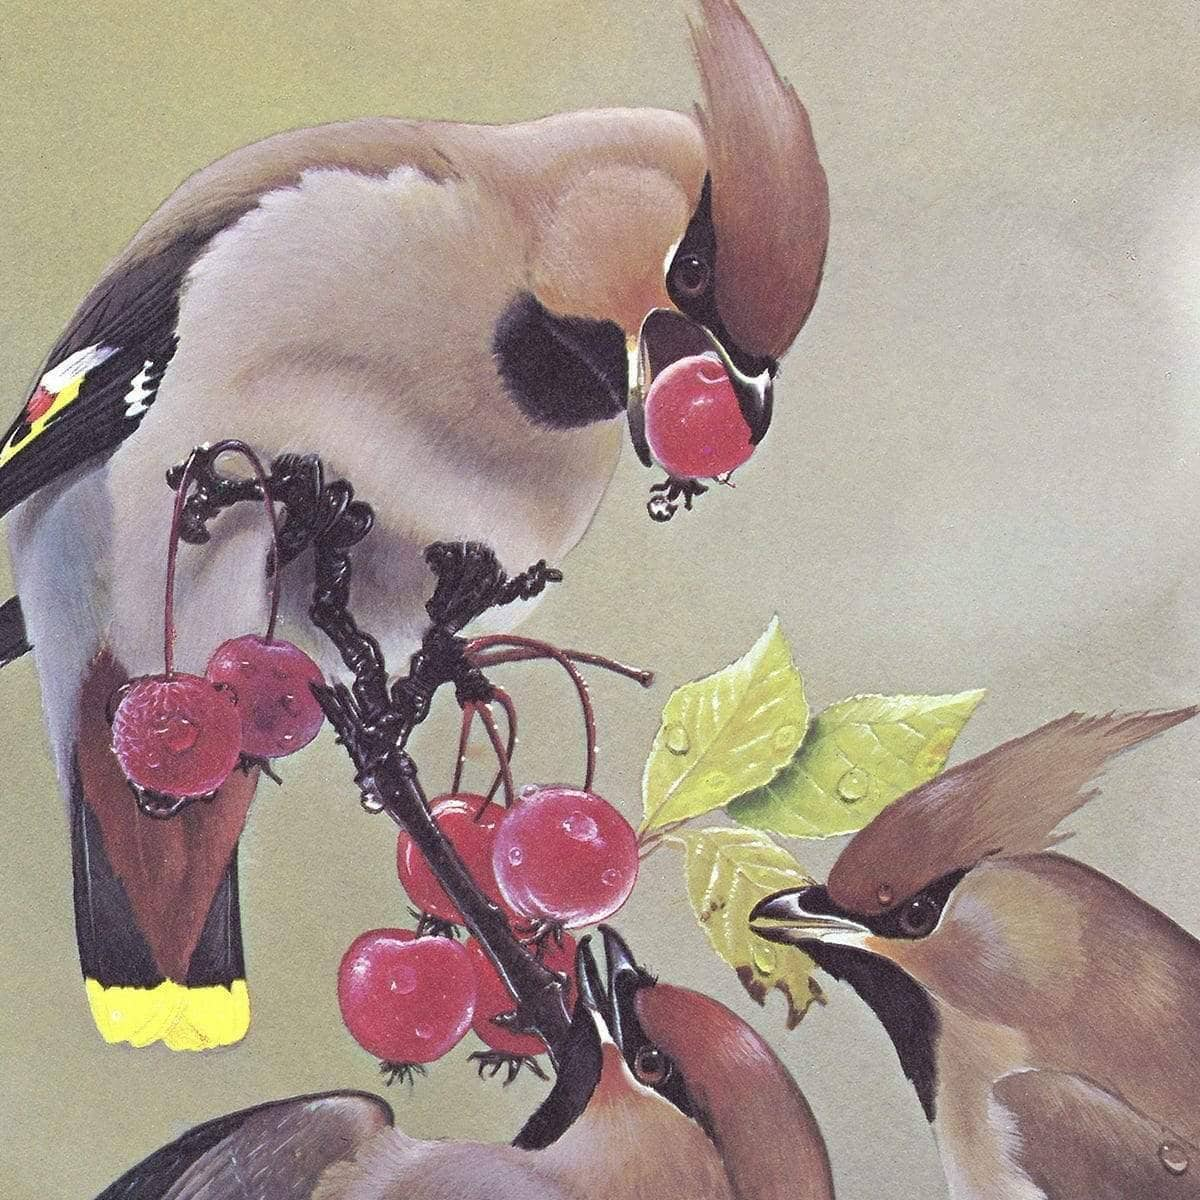 Bohemian Waxwing - Art Print by Glen Loates from the Glen Loates Store